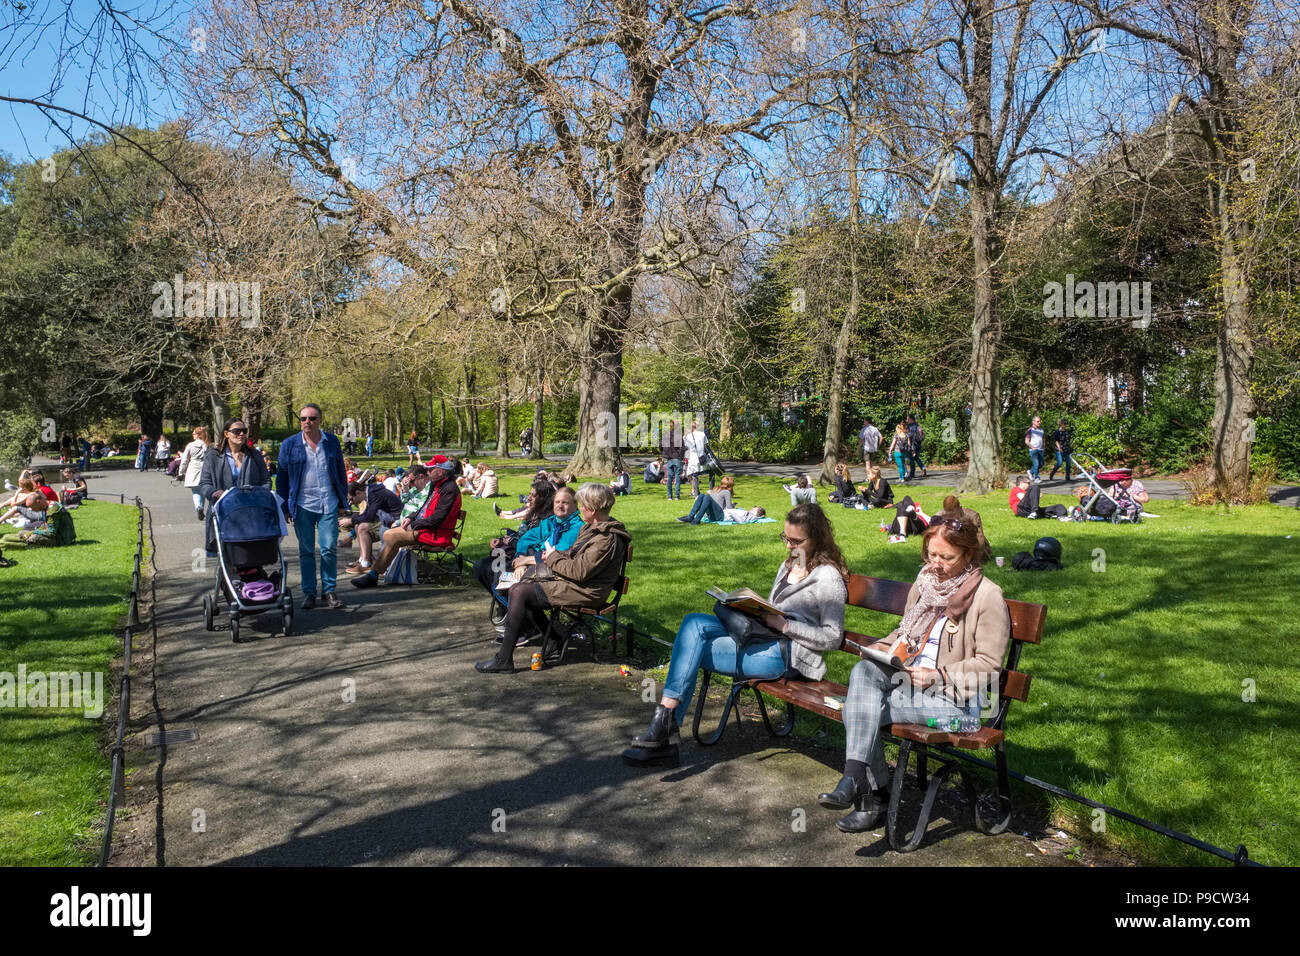 People relaxing and walking in St Stephen's Green urban park, Dublin, Ireland, Europe - Stock Image